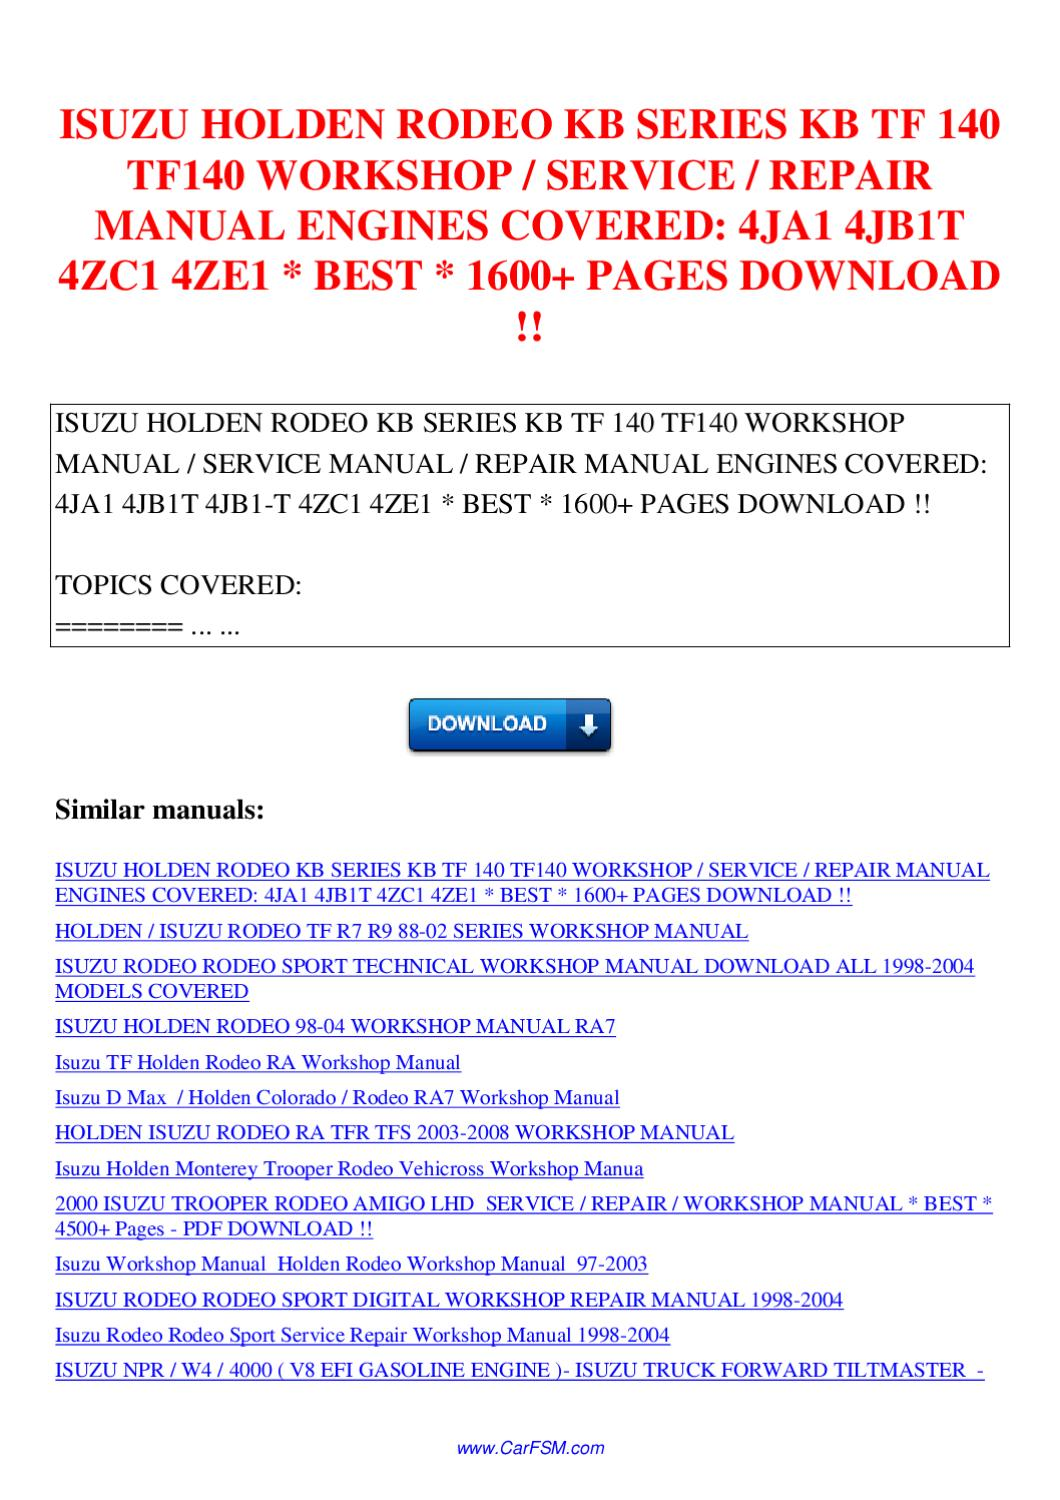 ISUZU HOLDEN RODEO KB SERIES KB TF 140 TF140 WORKSHOP SERVICE REPAIR MANUAL  ENGINES COVERED by Nana Hong - issuu